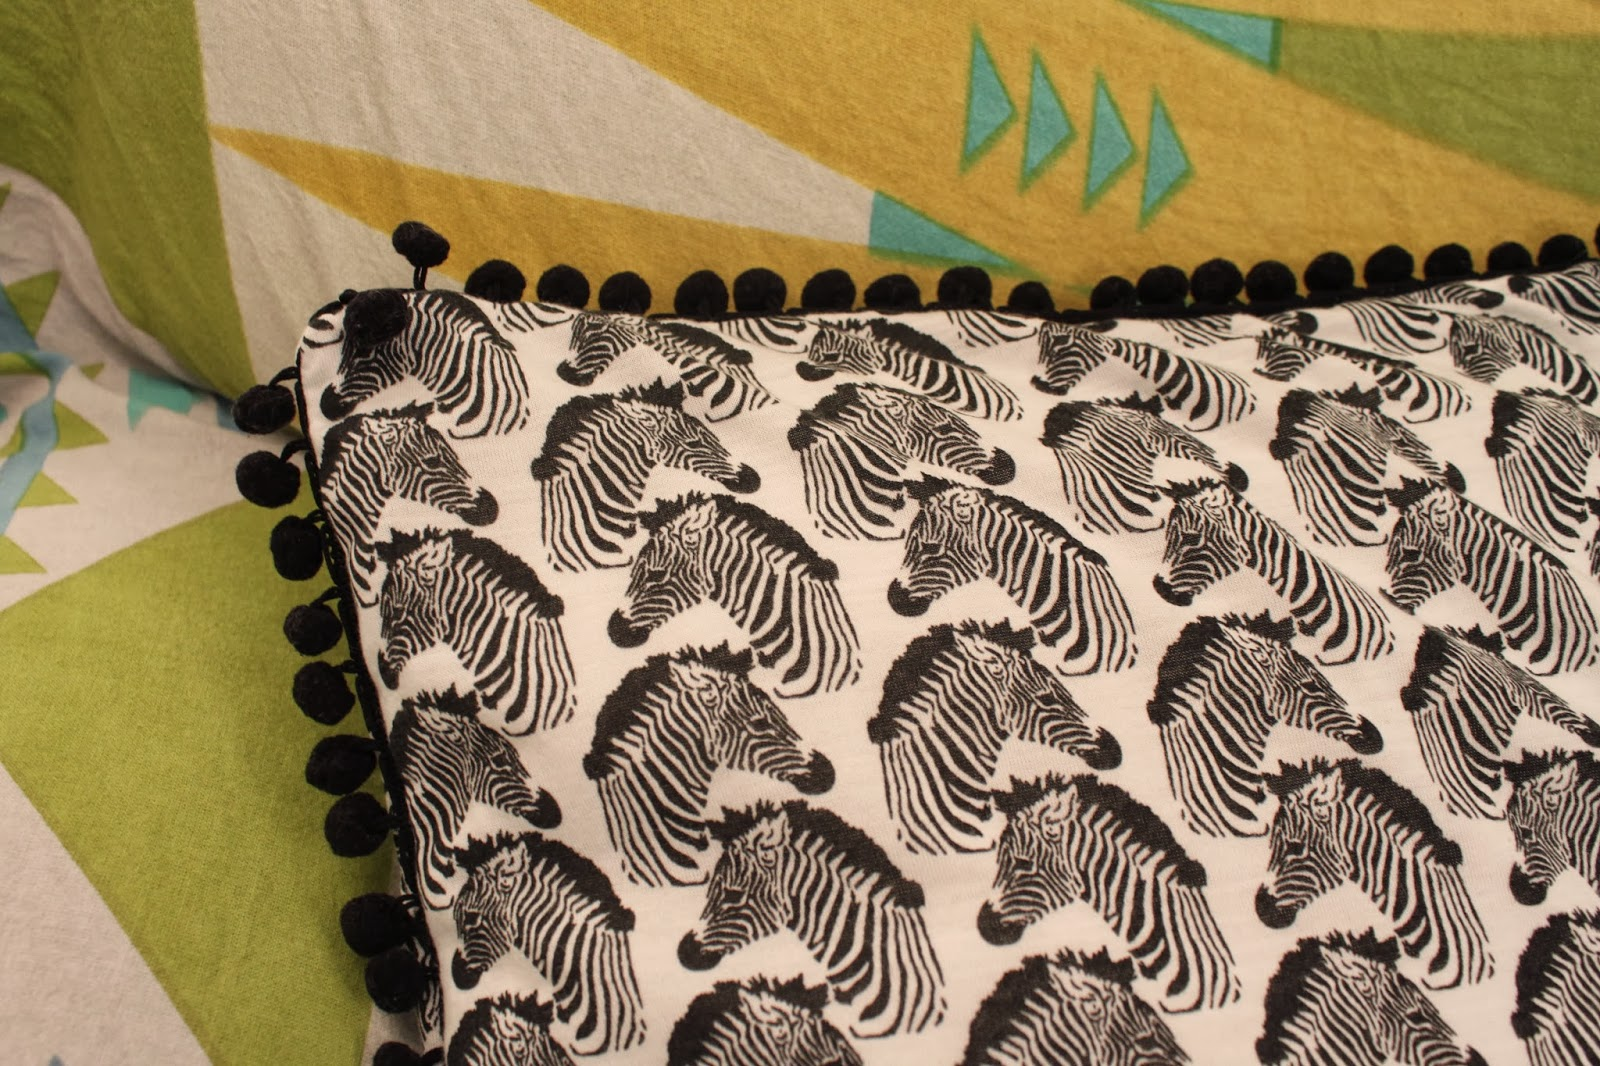 diy zebra pom pom cushion